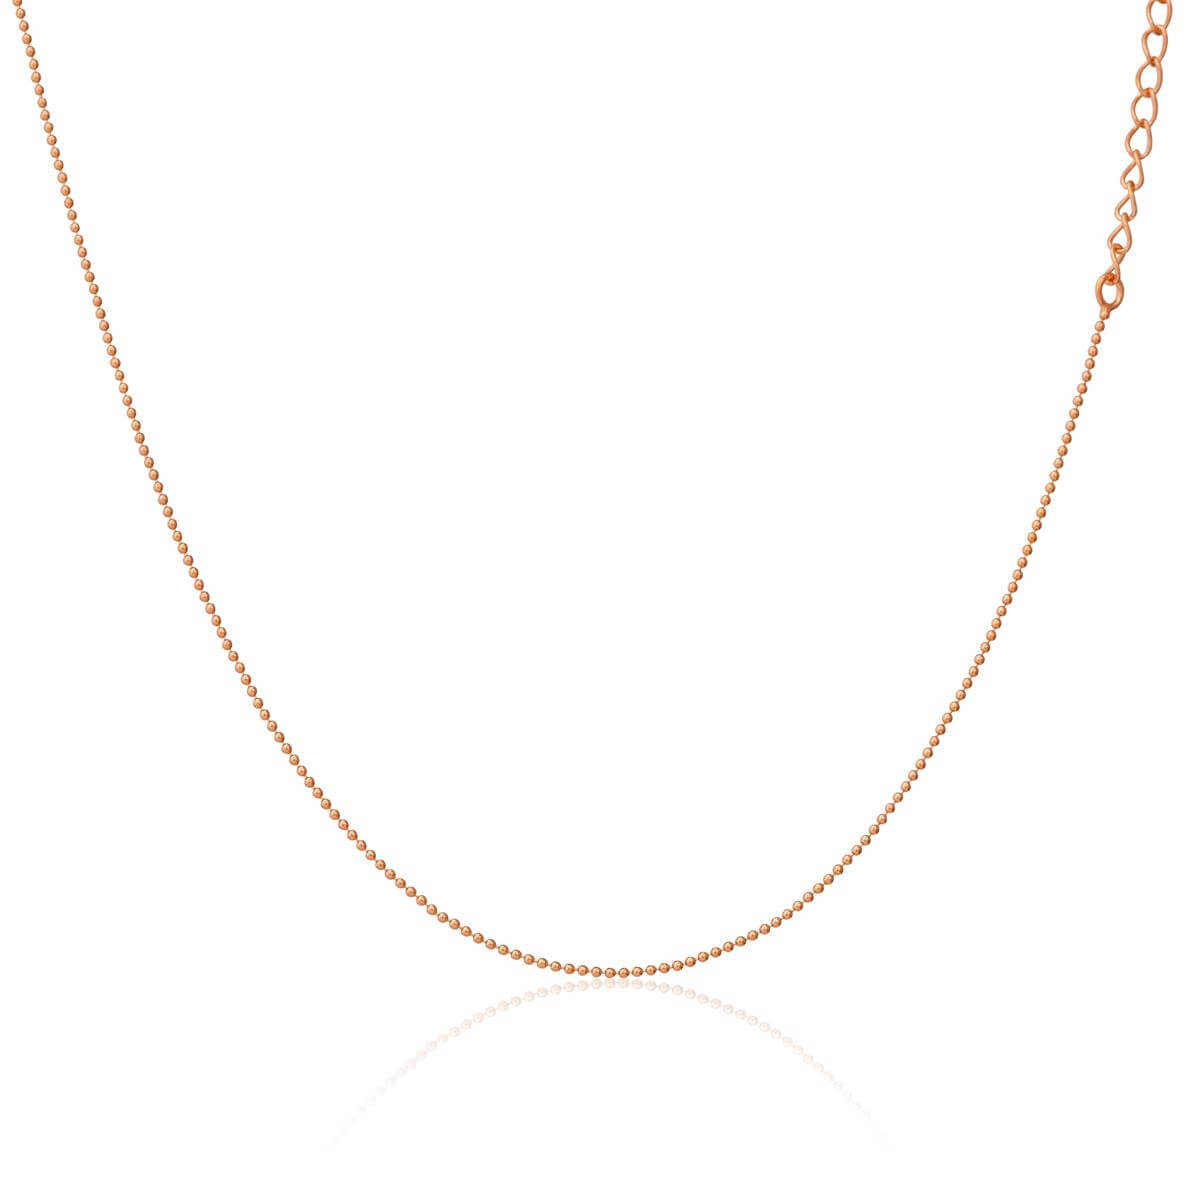 Rose Gold Plated Sterling Silver 1mm Bead Chain Choker 12 + 3 Inches